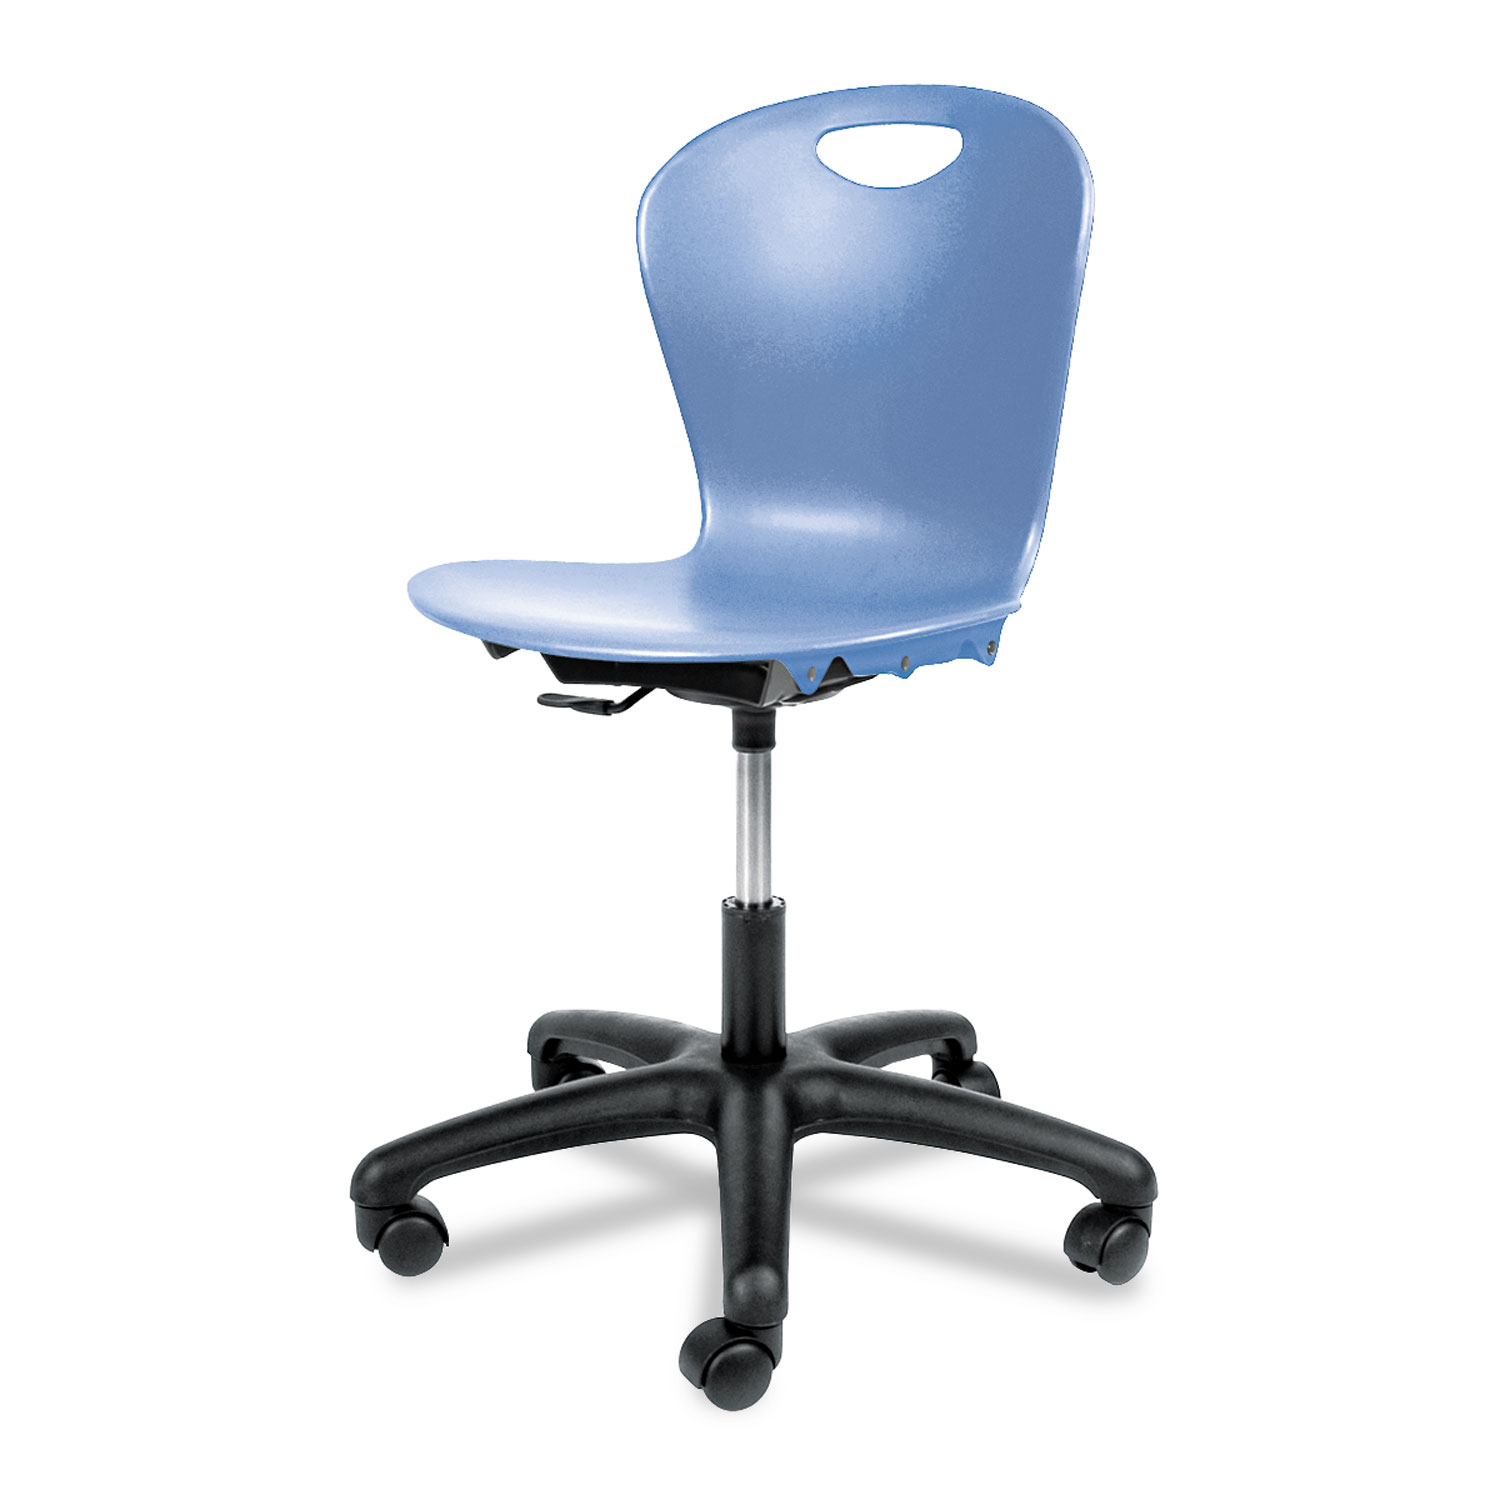 Adjustable Height Task Chair, Blueberry Seat/Blueberry Back, Black Base